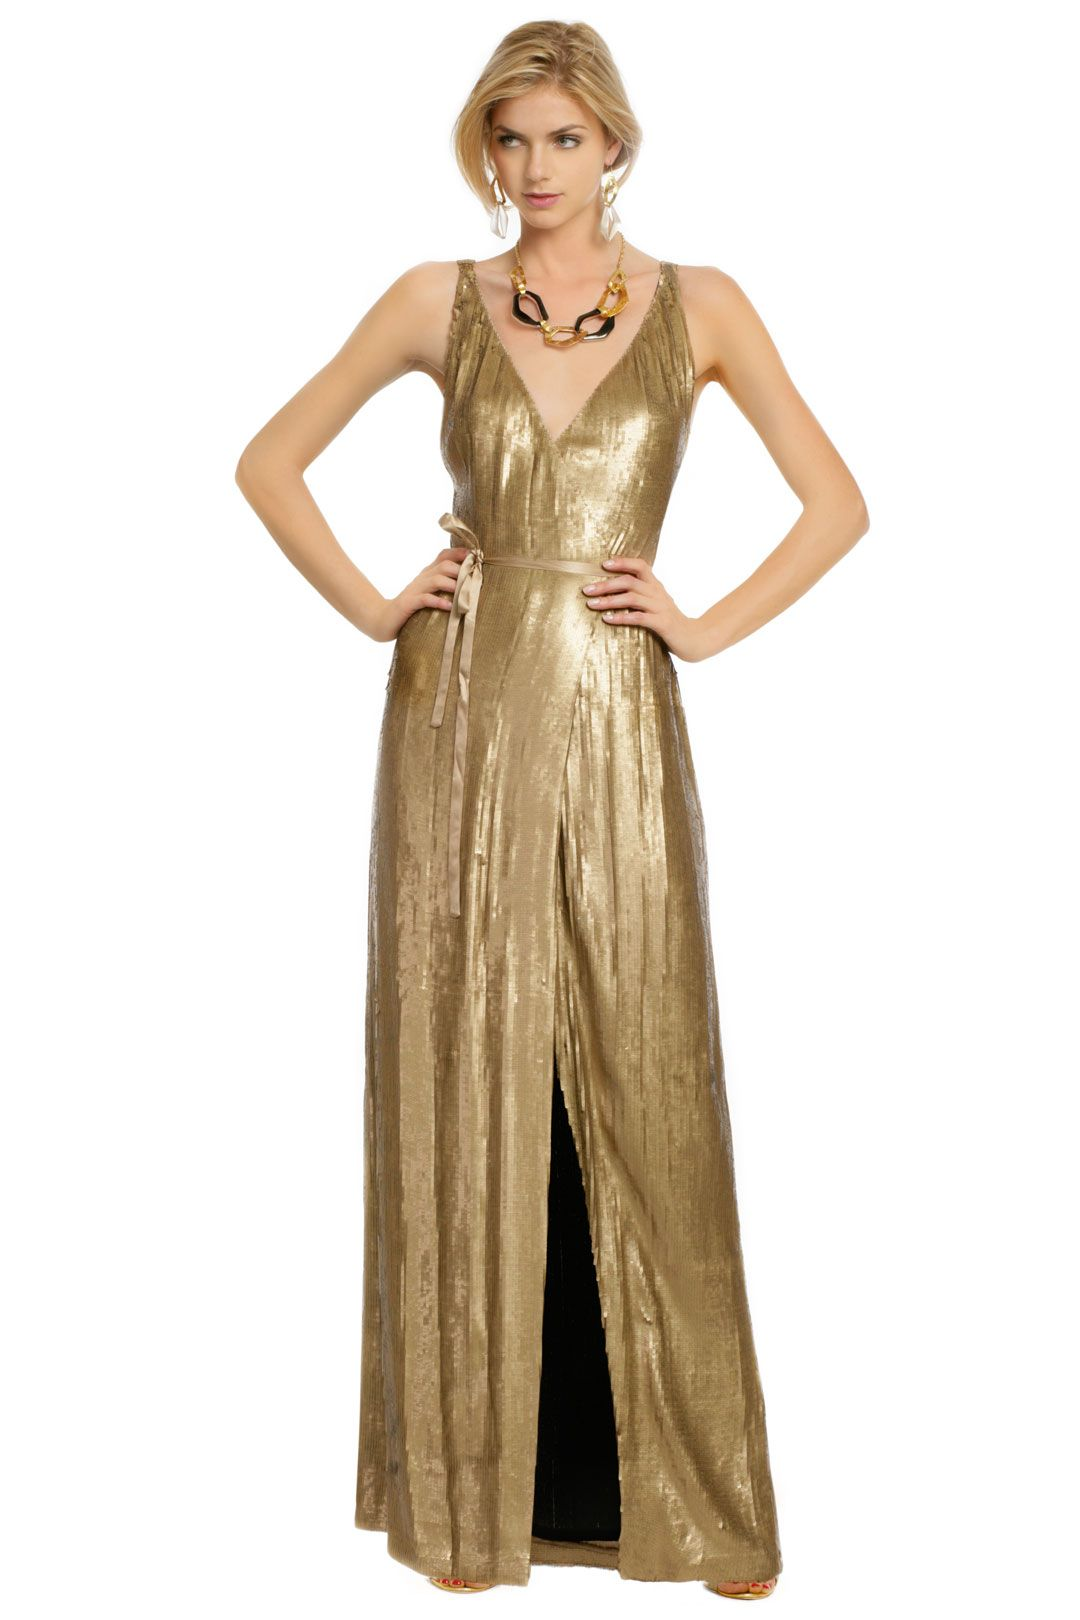 Clarice gold sequin gown gold sequin gown diane von furstenberg clarice gold sequin gown gold bridesmaidsgold bridesmaid dressesfall ombrellifo Gallery